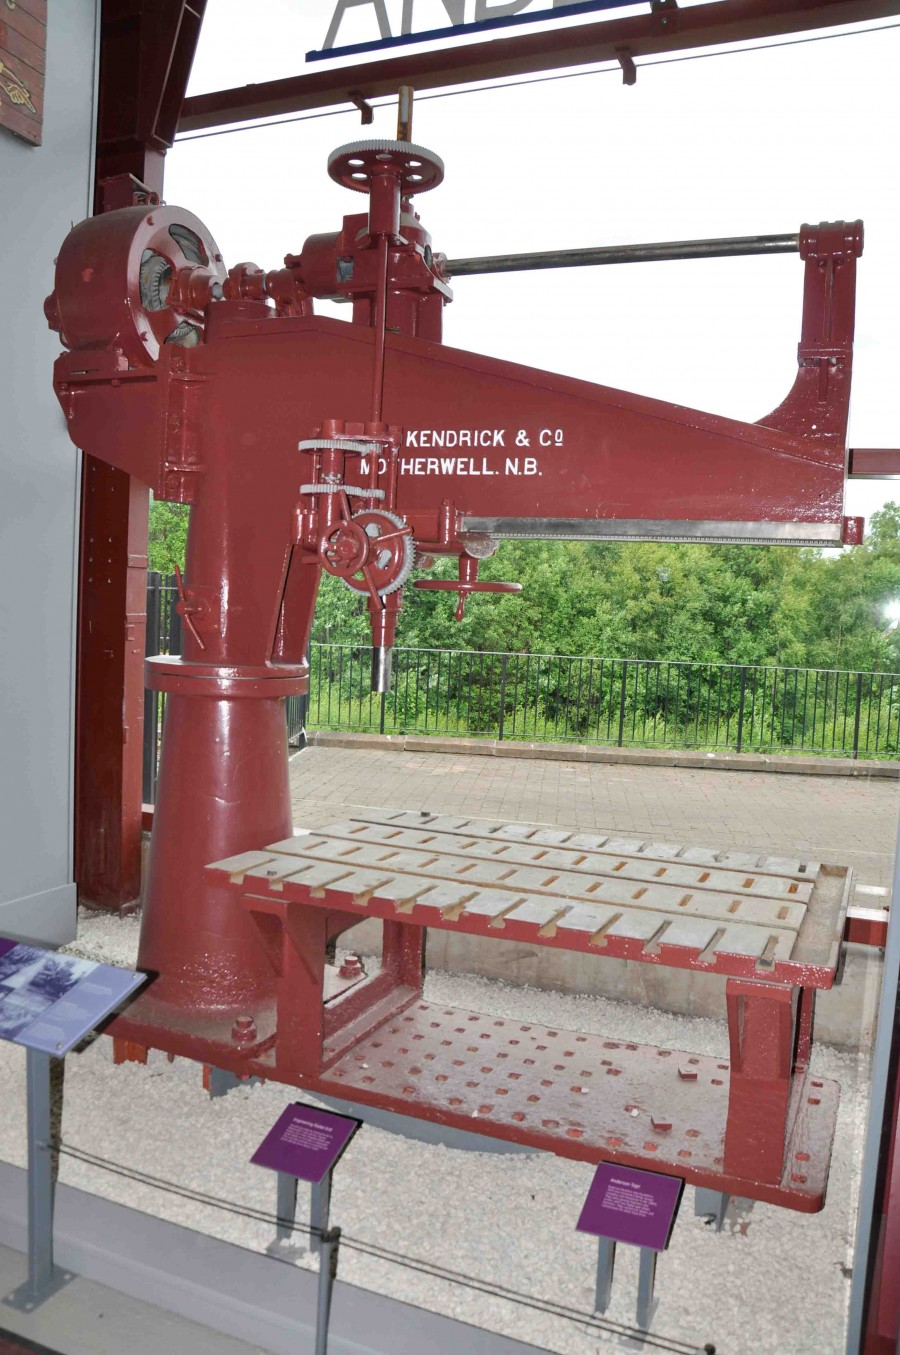 radial drill. painted red, with writing: kendrick & co / motherwell n.b.